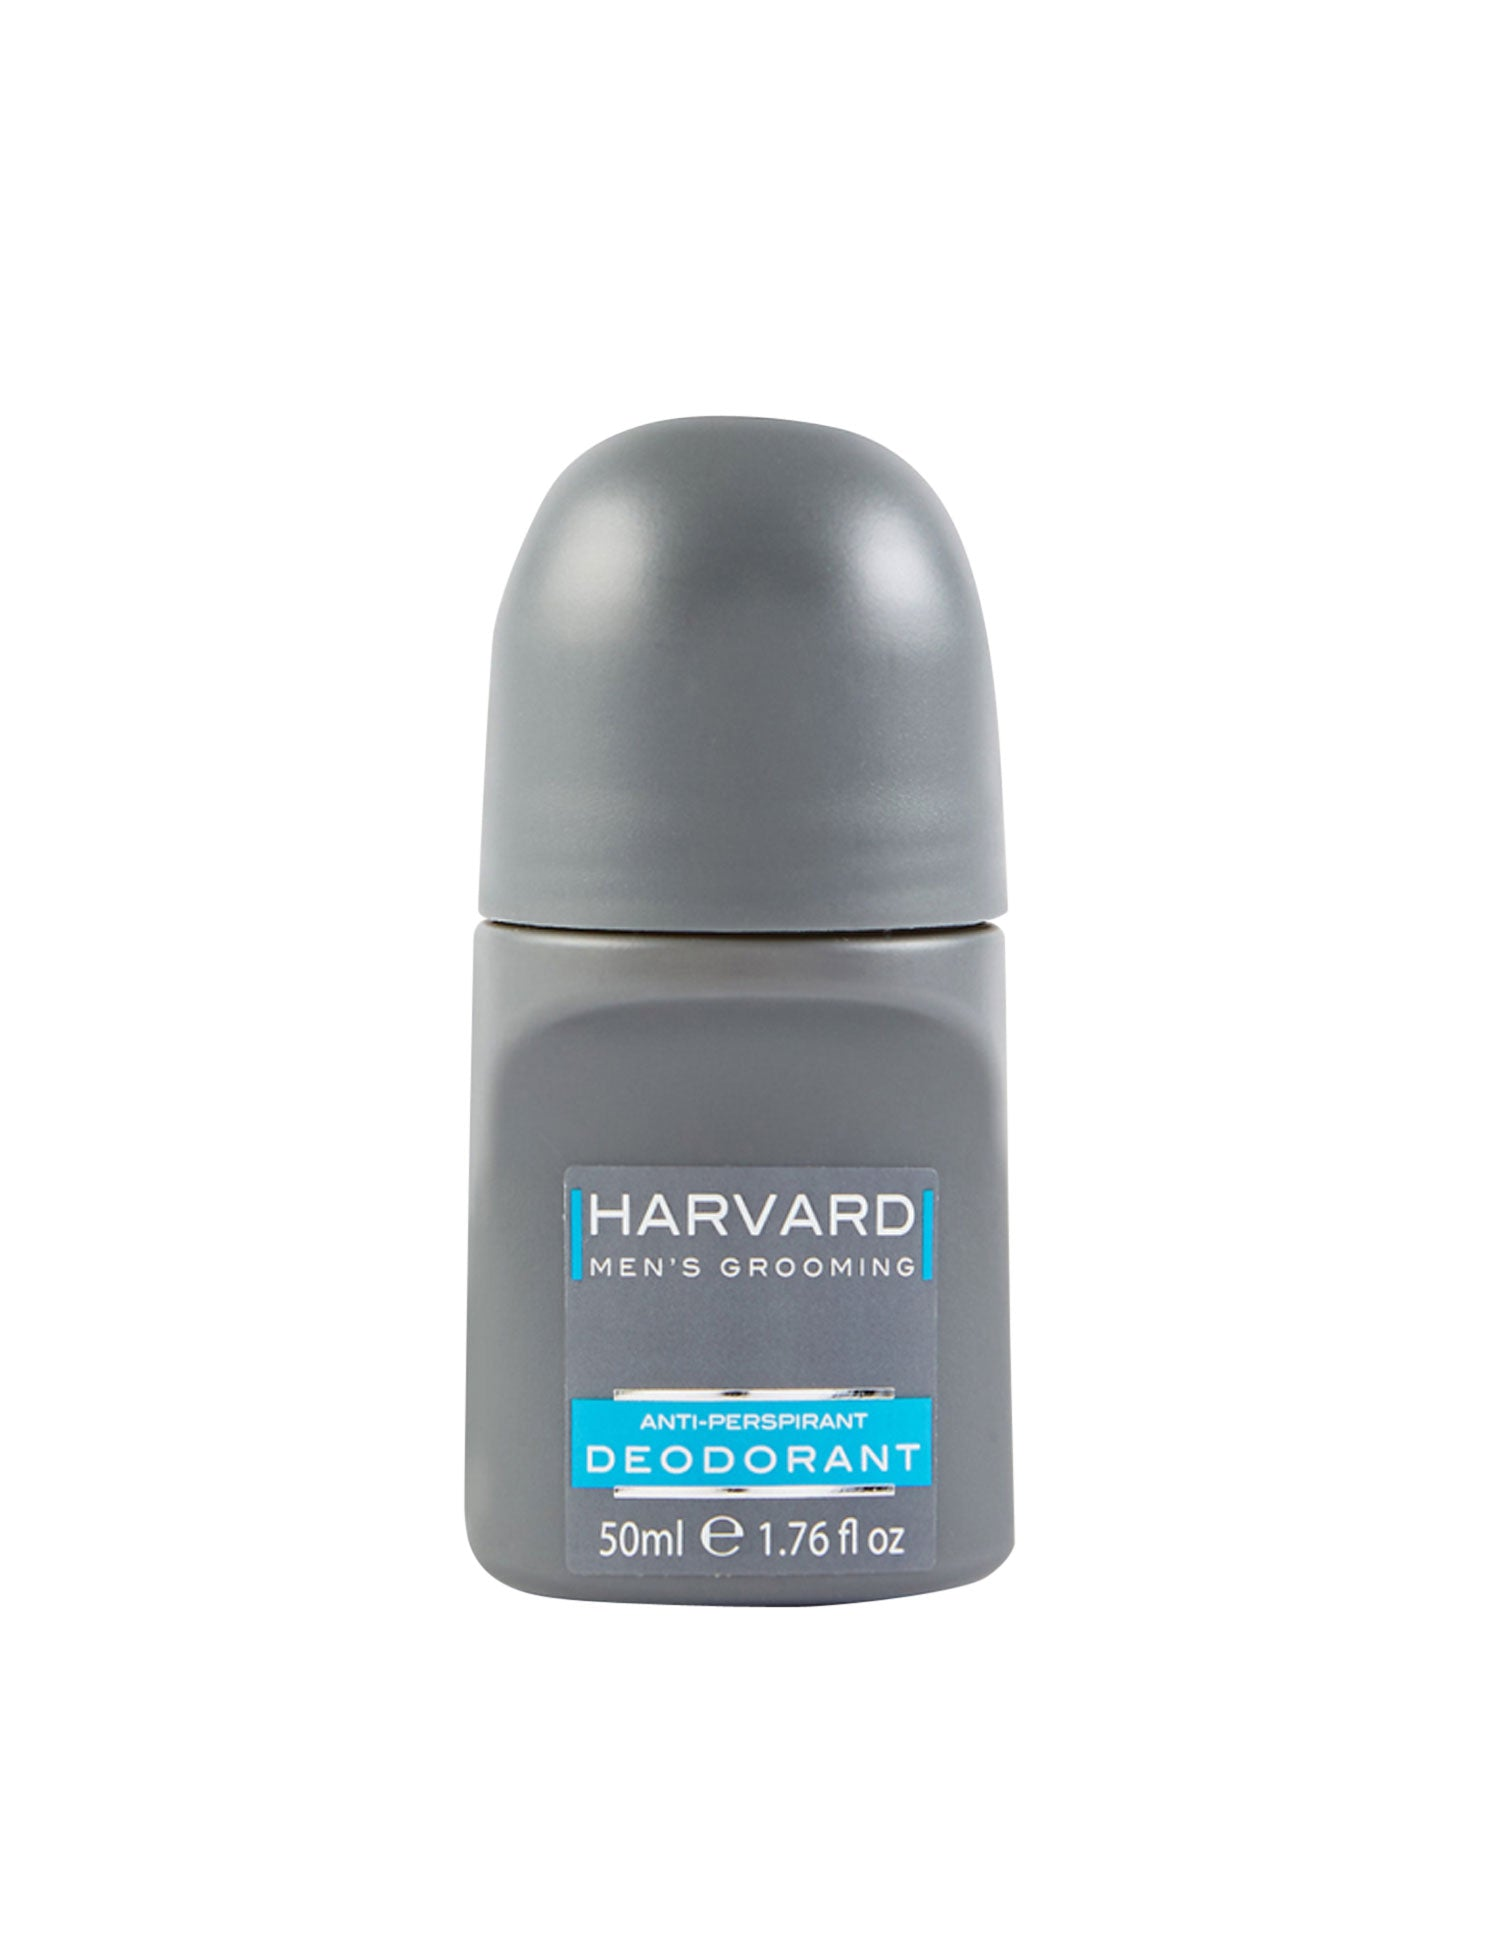 Harvard Anti-Perspirant Roll on Deodorant 50ml